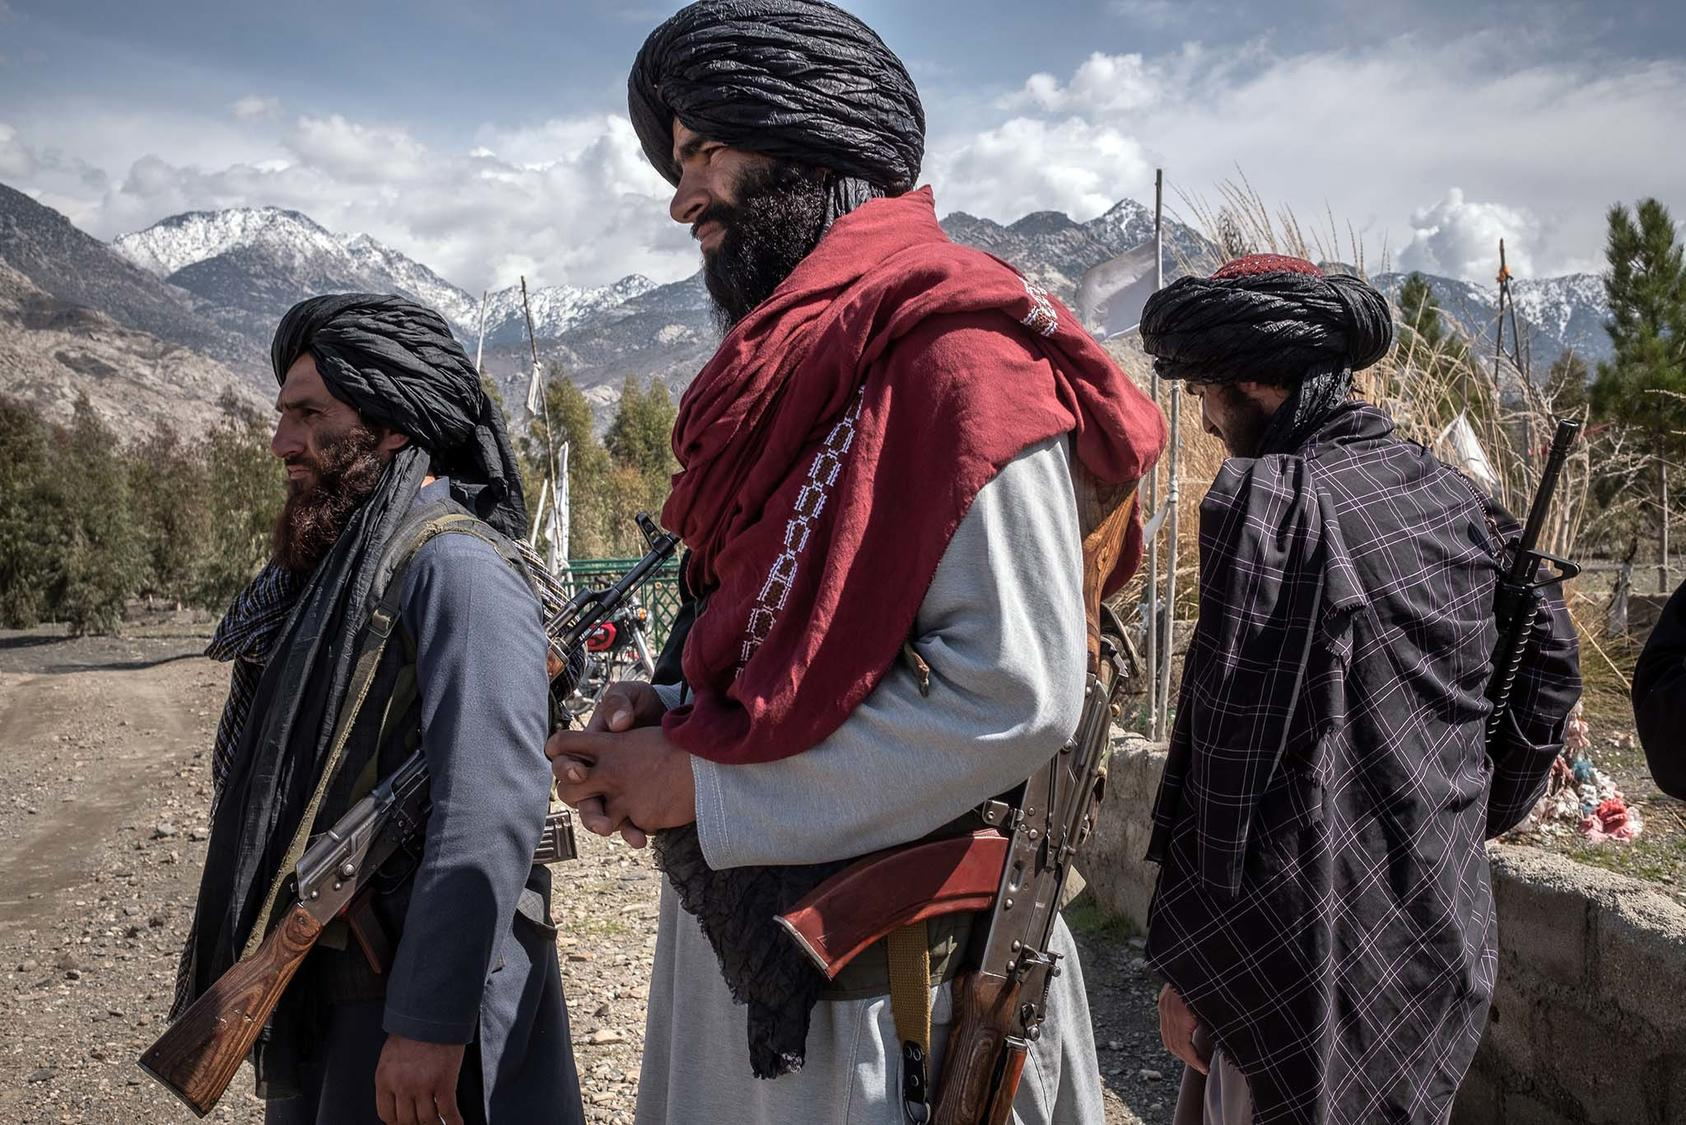 Members of the Taliban in Laghman Province, Afghanistan, on March 13, 2020. Many fear that the extremist group will return to power after the Americans leave. (Jim Huylebroek/The New York Times)